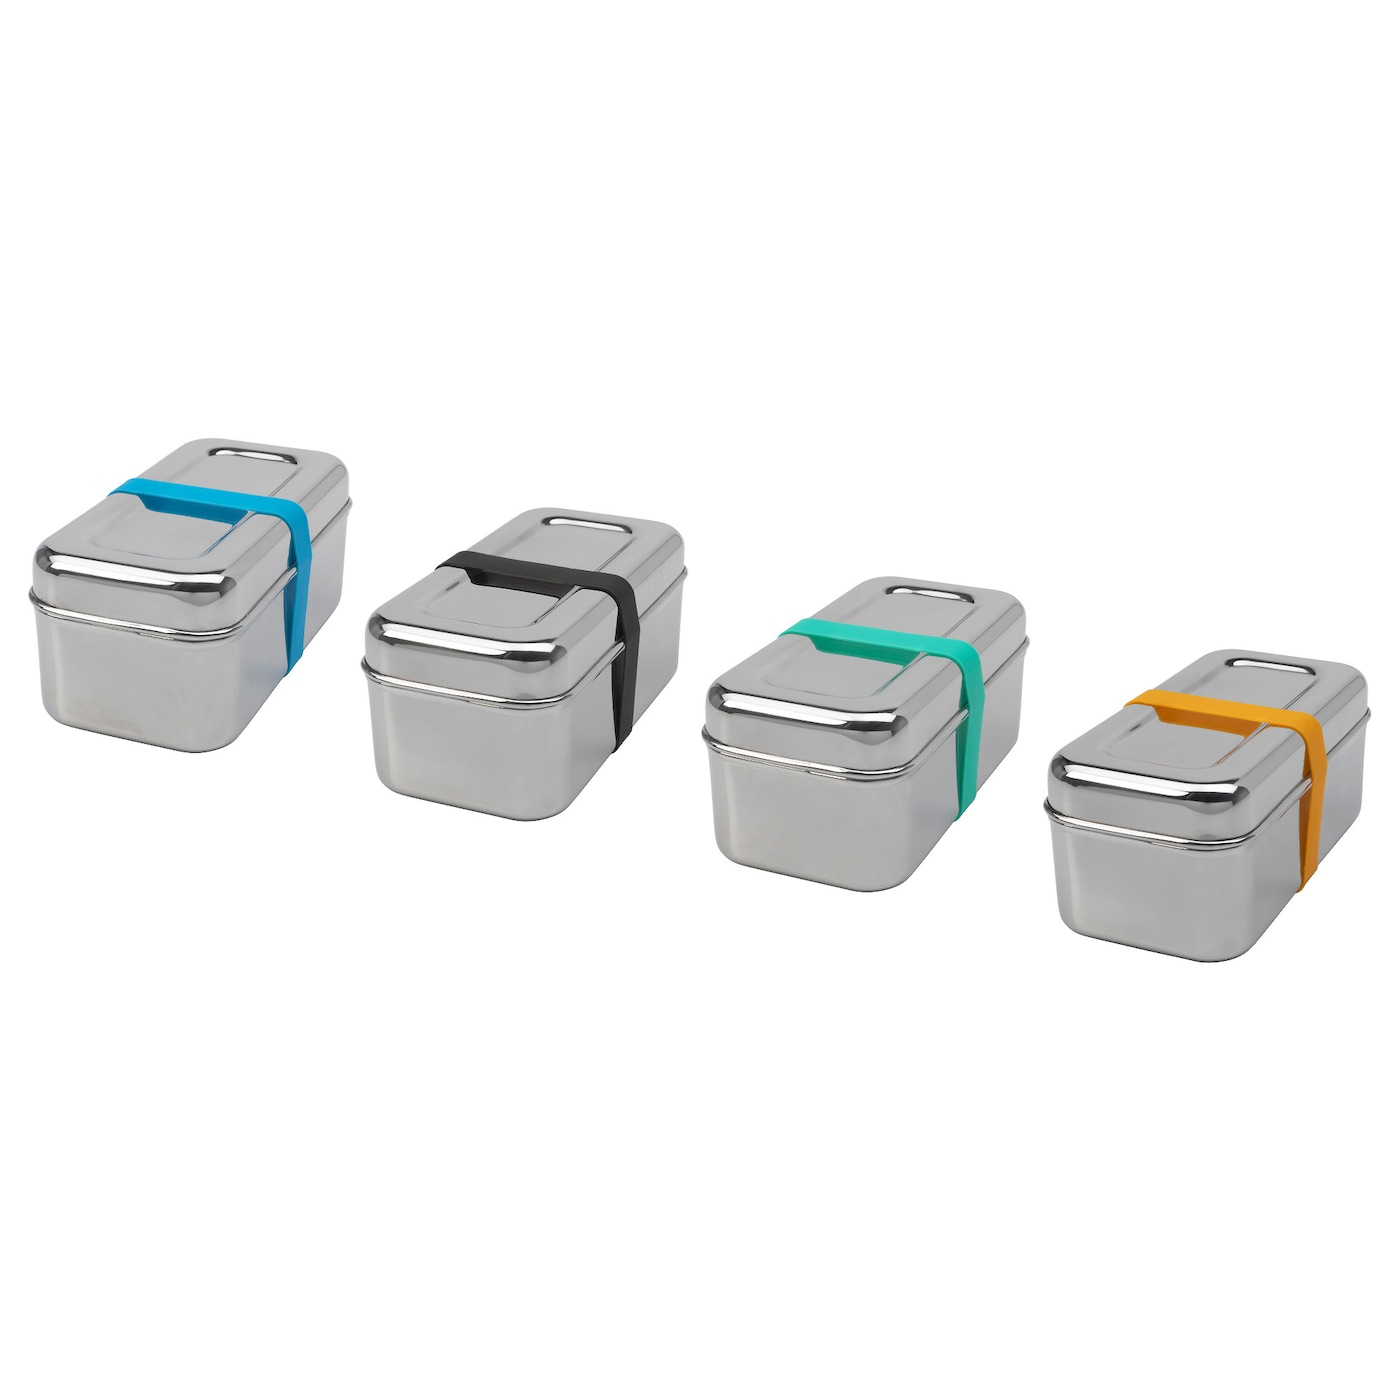 IKEA SPRIDD box with lid, set of 2 Suitable for storing dry foodstuffs.